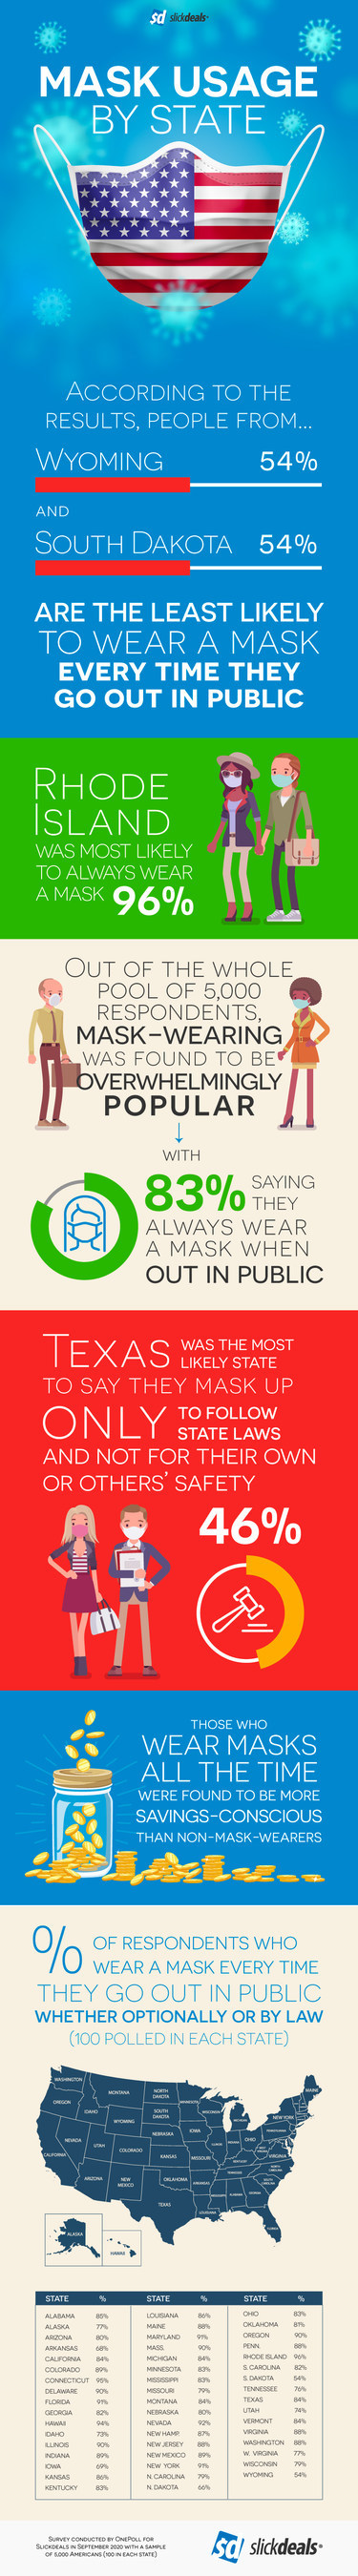 A survey of 5,000 Americans, conducted by OnePoll on behalf of Slickdeals, asked respondents about their mask usage amid the COVID-19 pandemic.